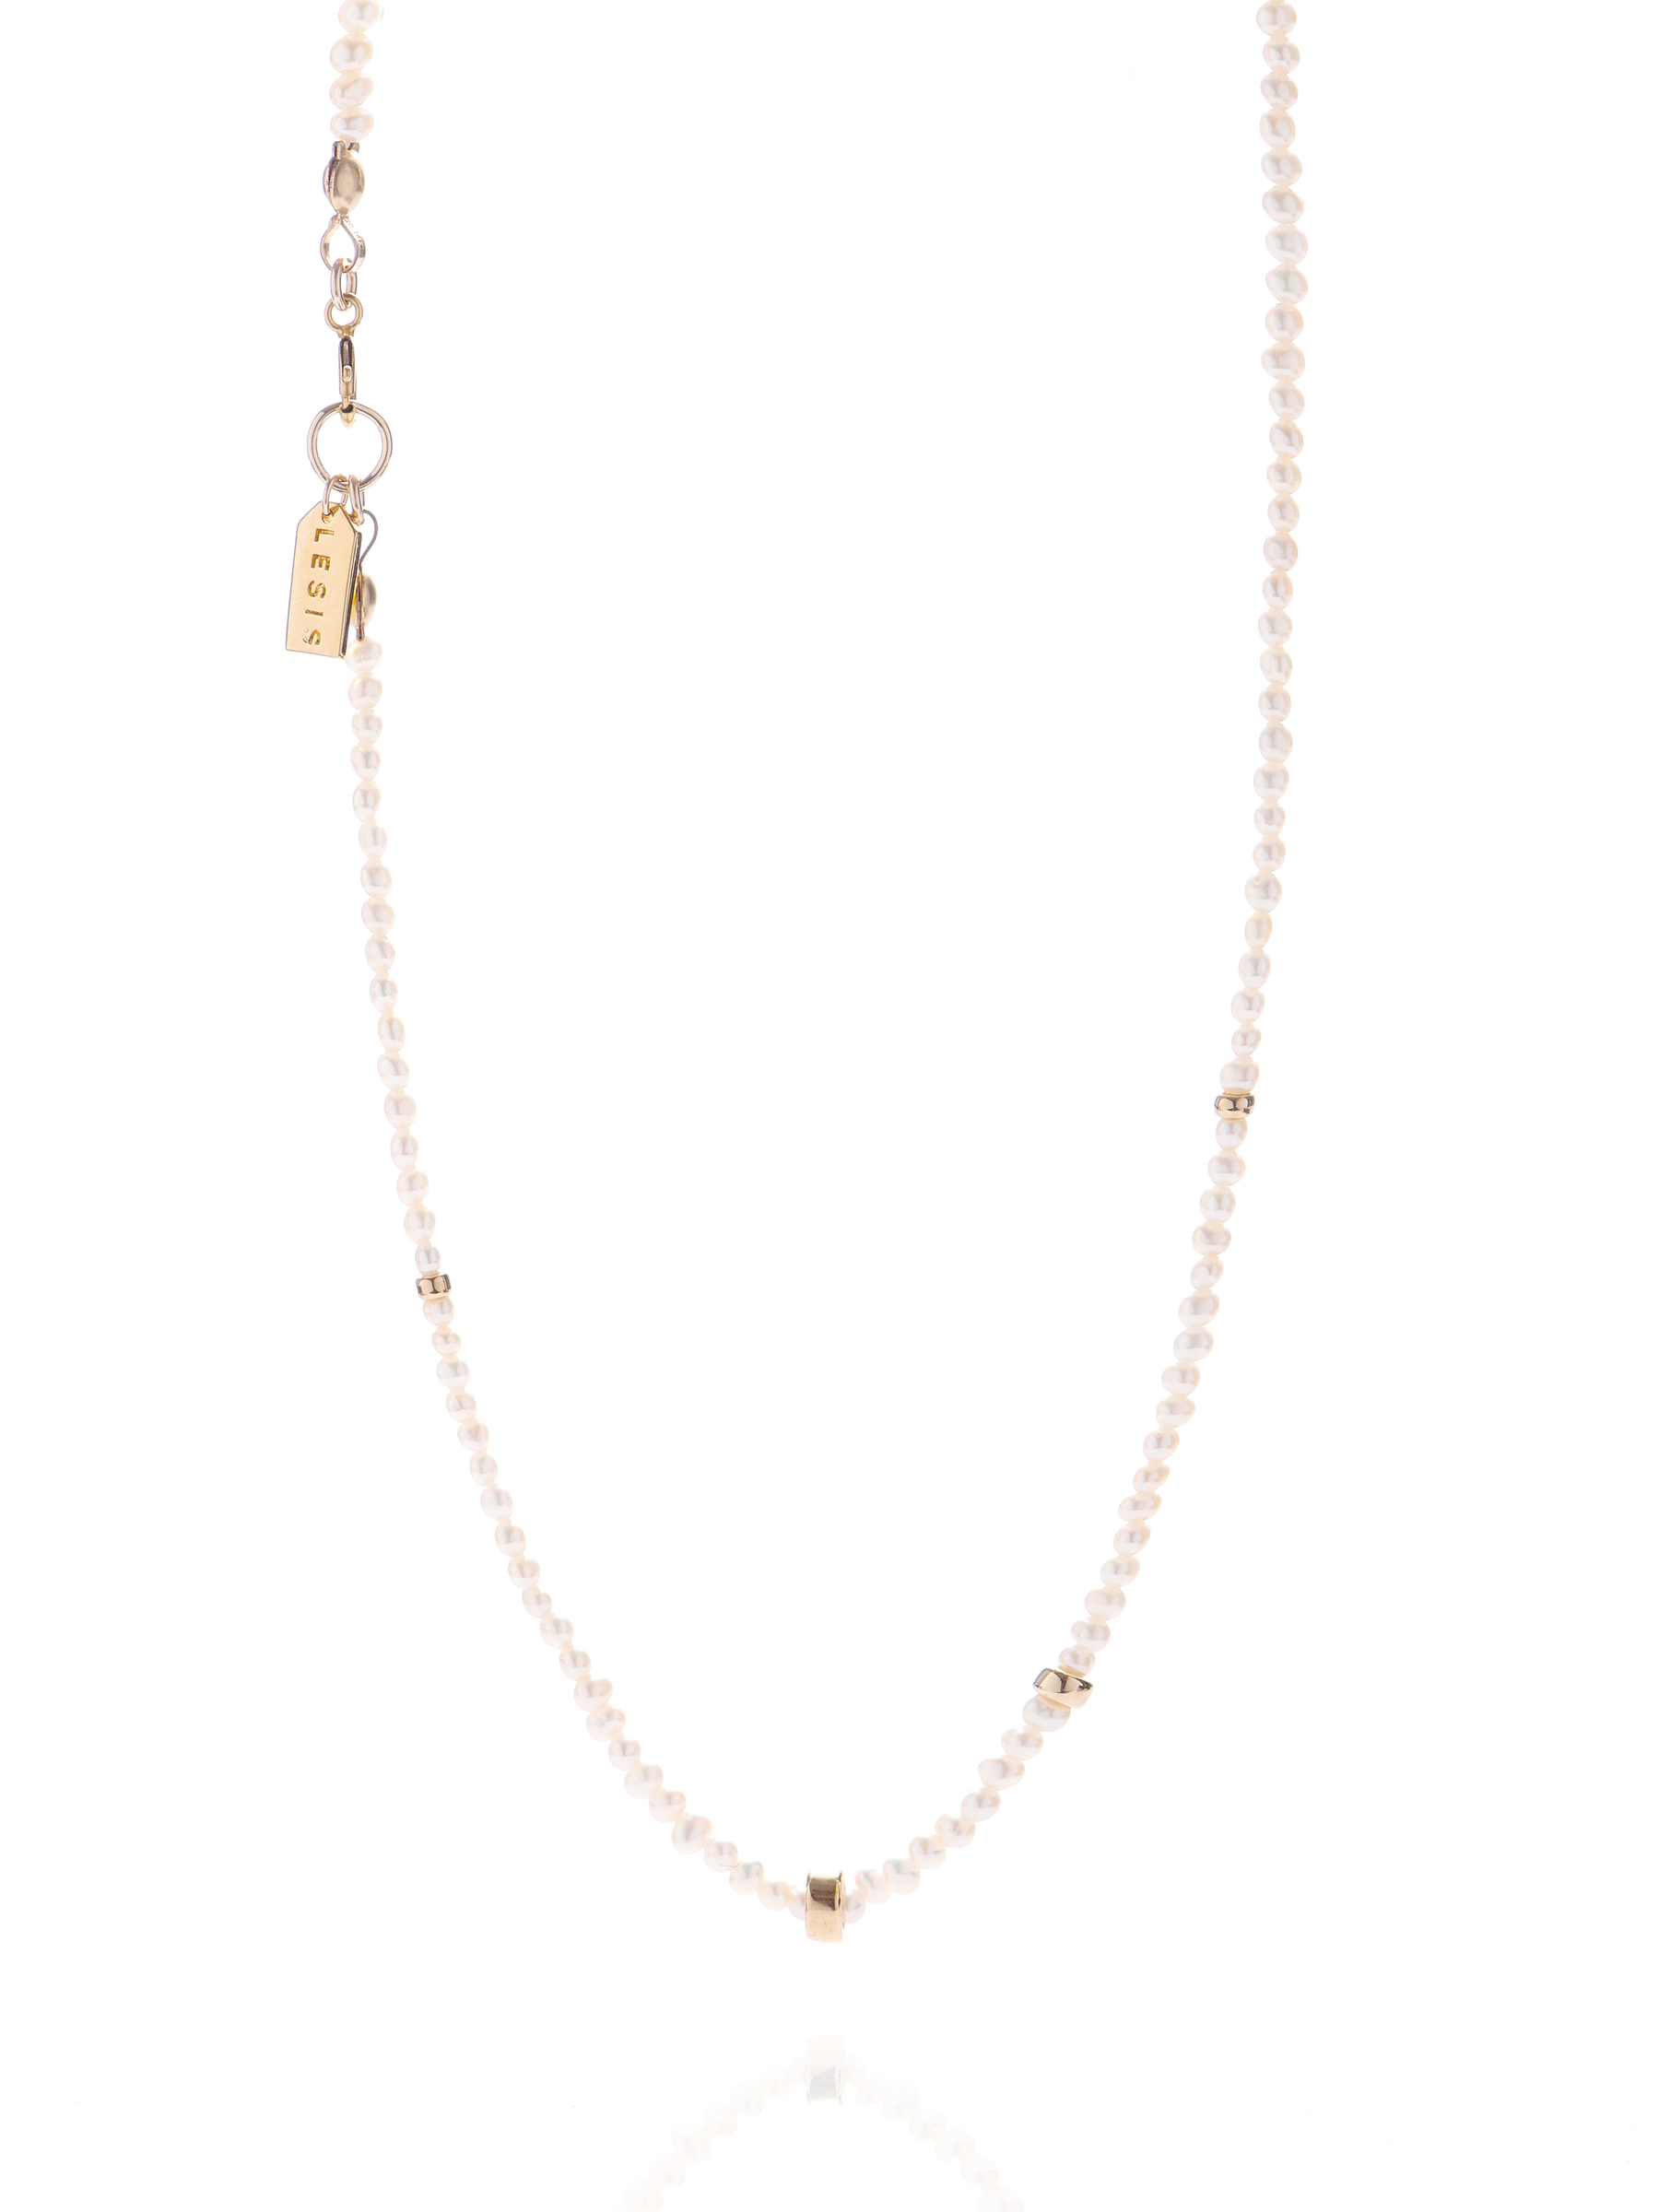 Mini Pearl With Golden Bean Necklace.jpg